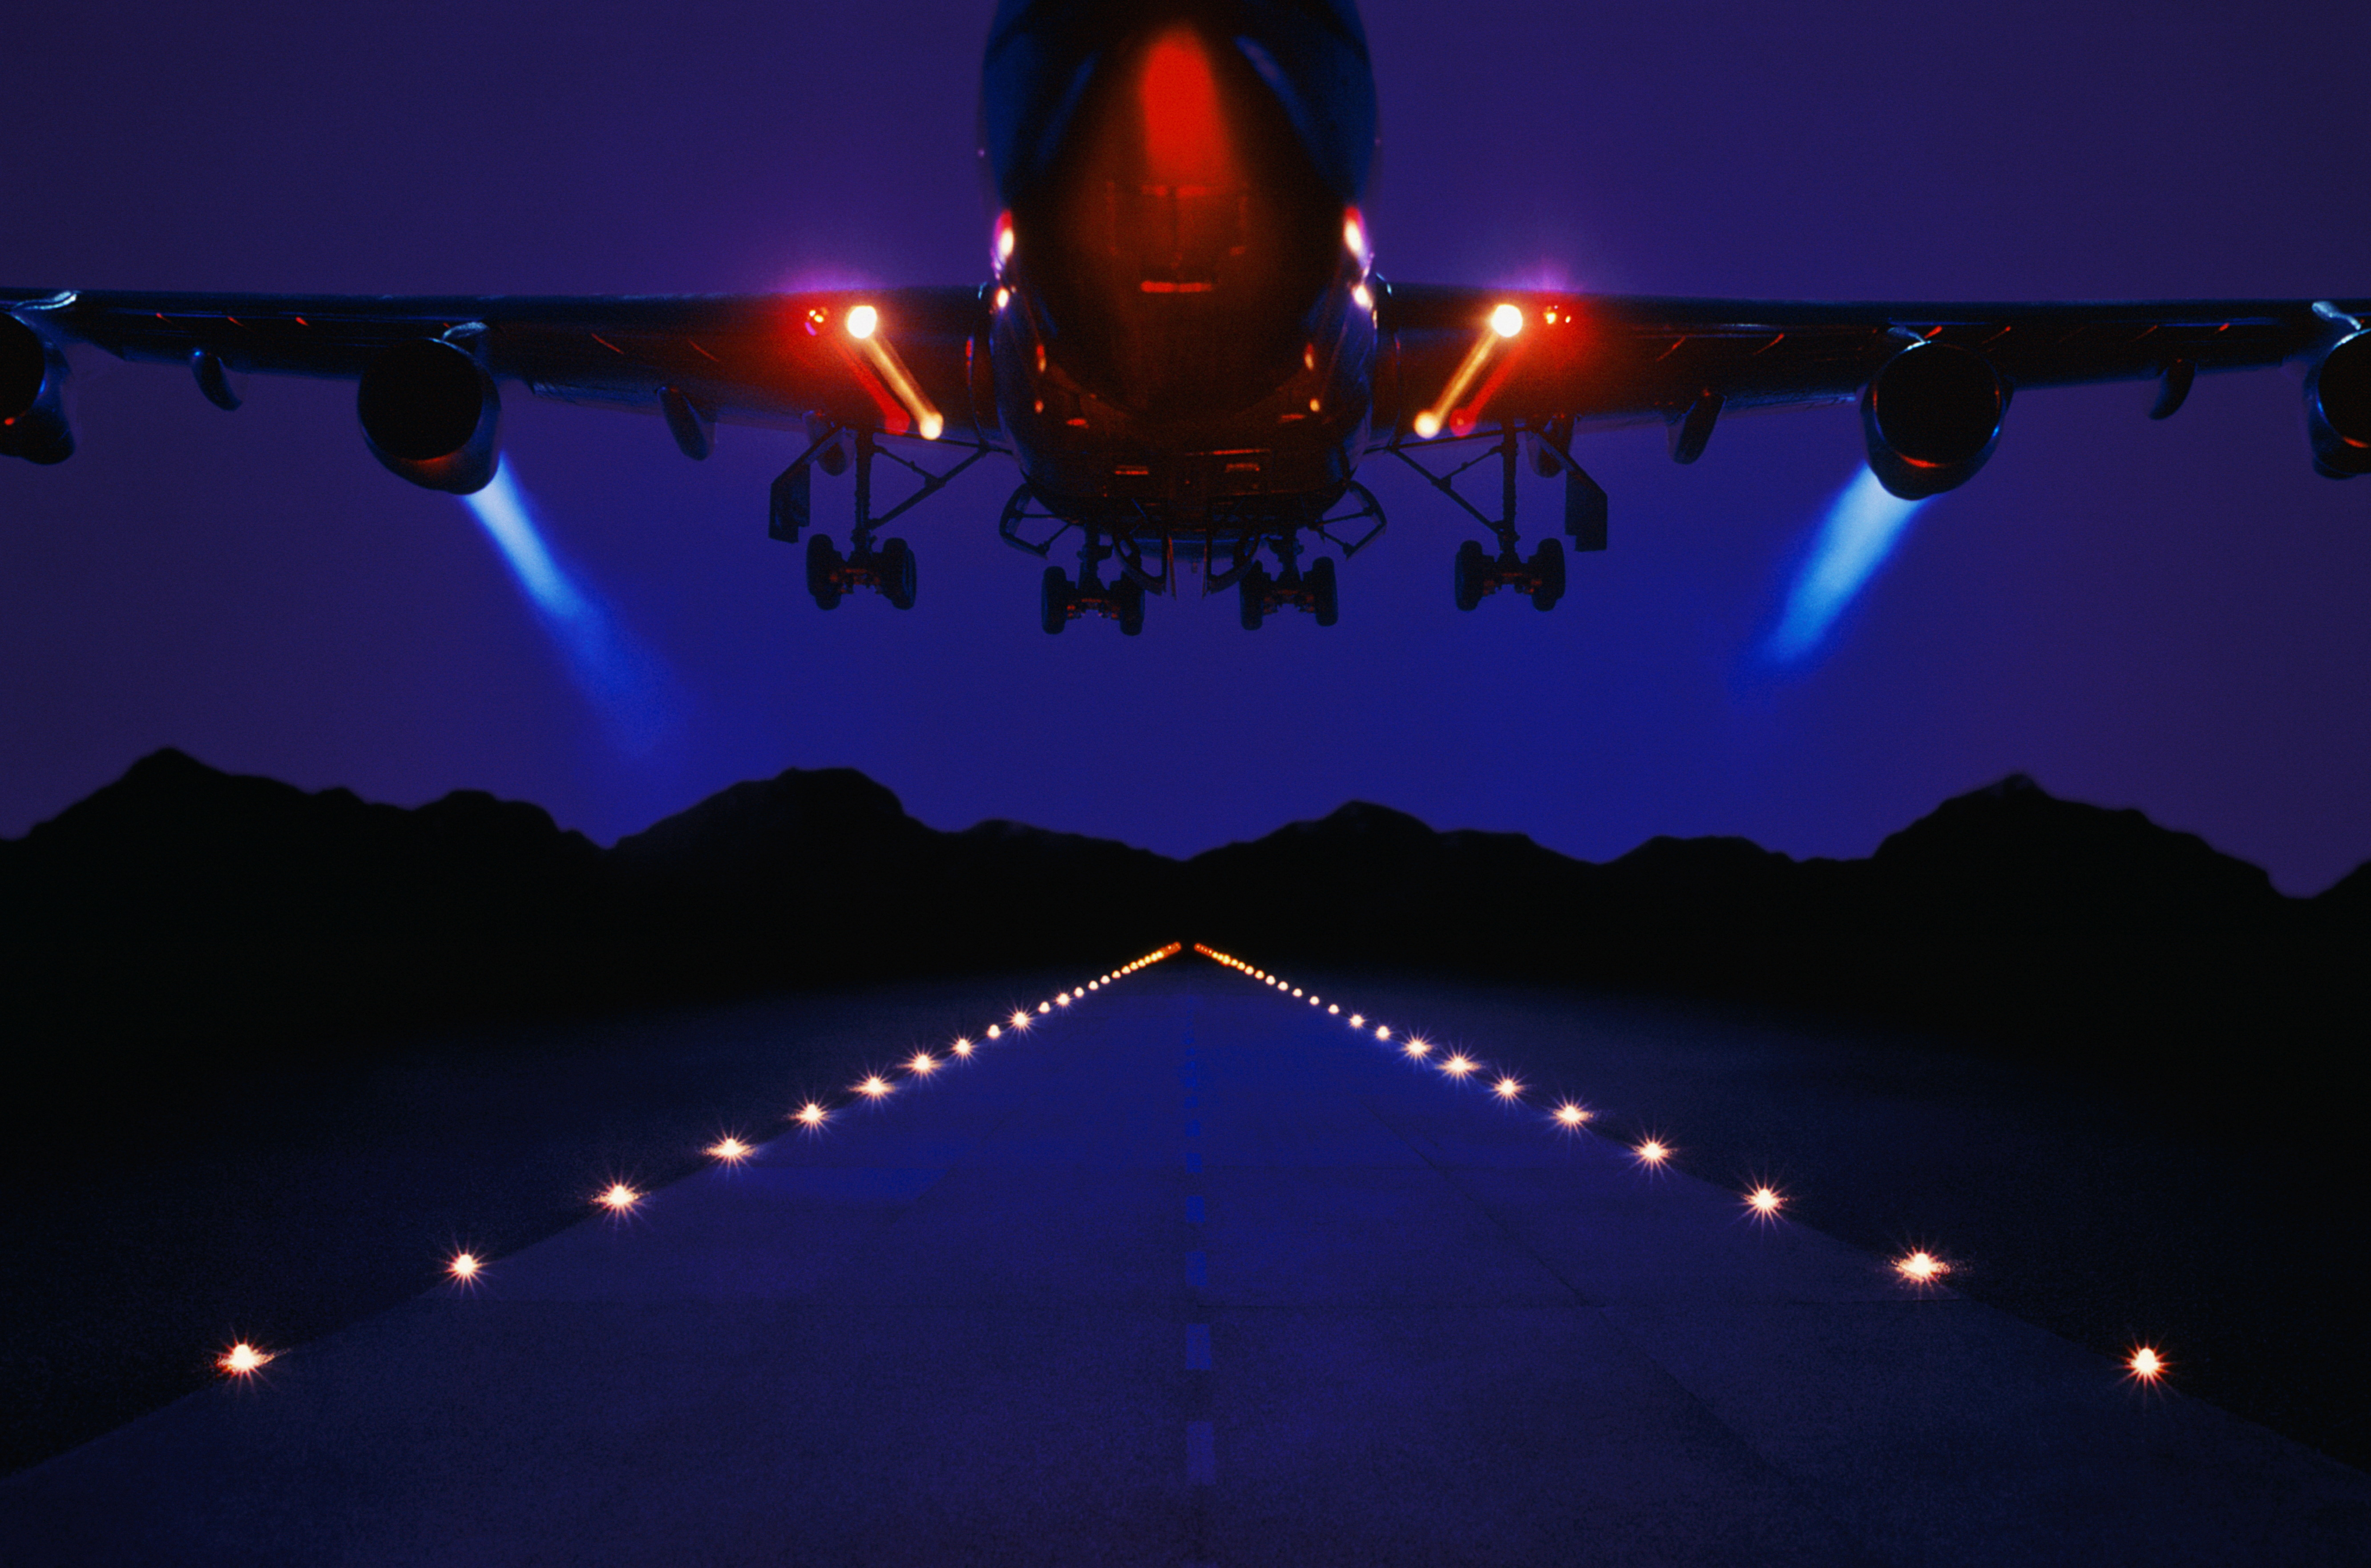 underbelly of jet plane at night